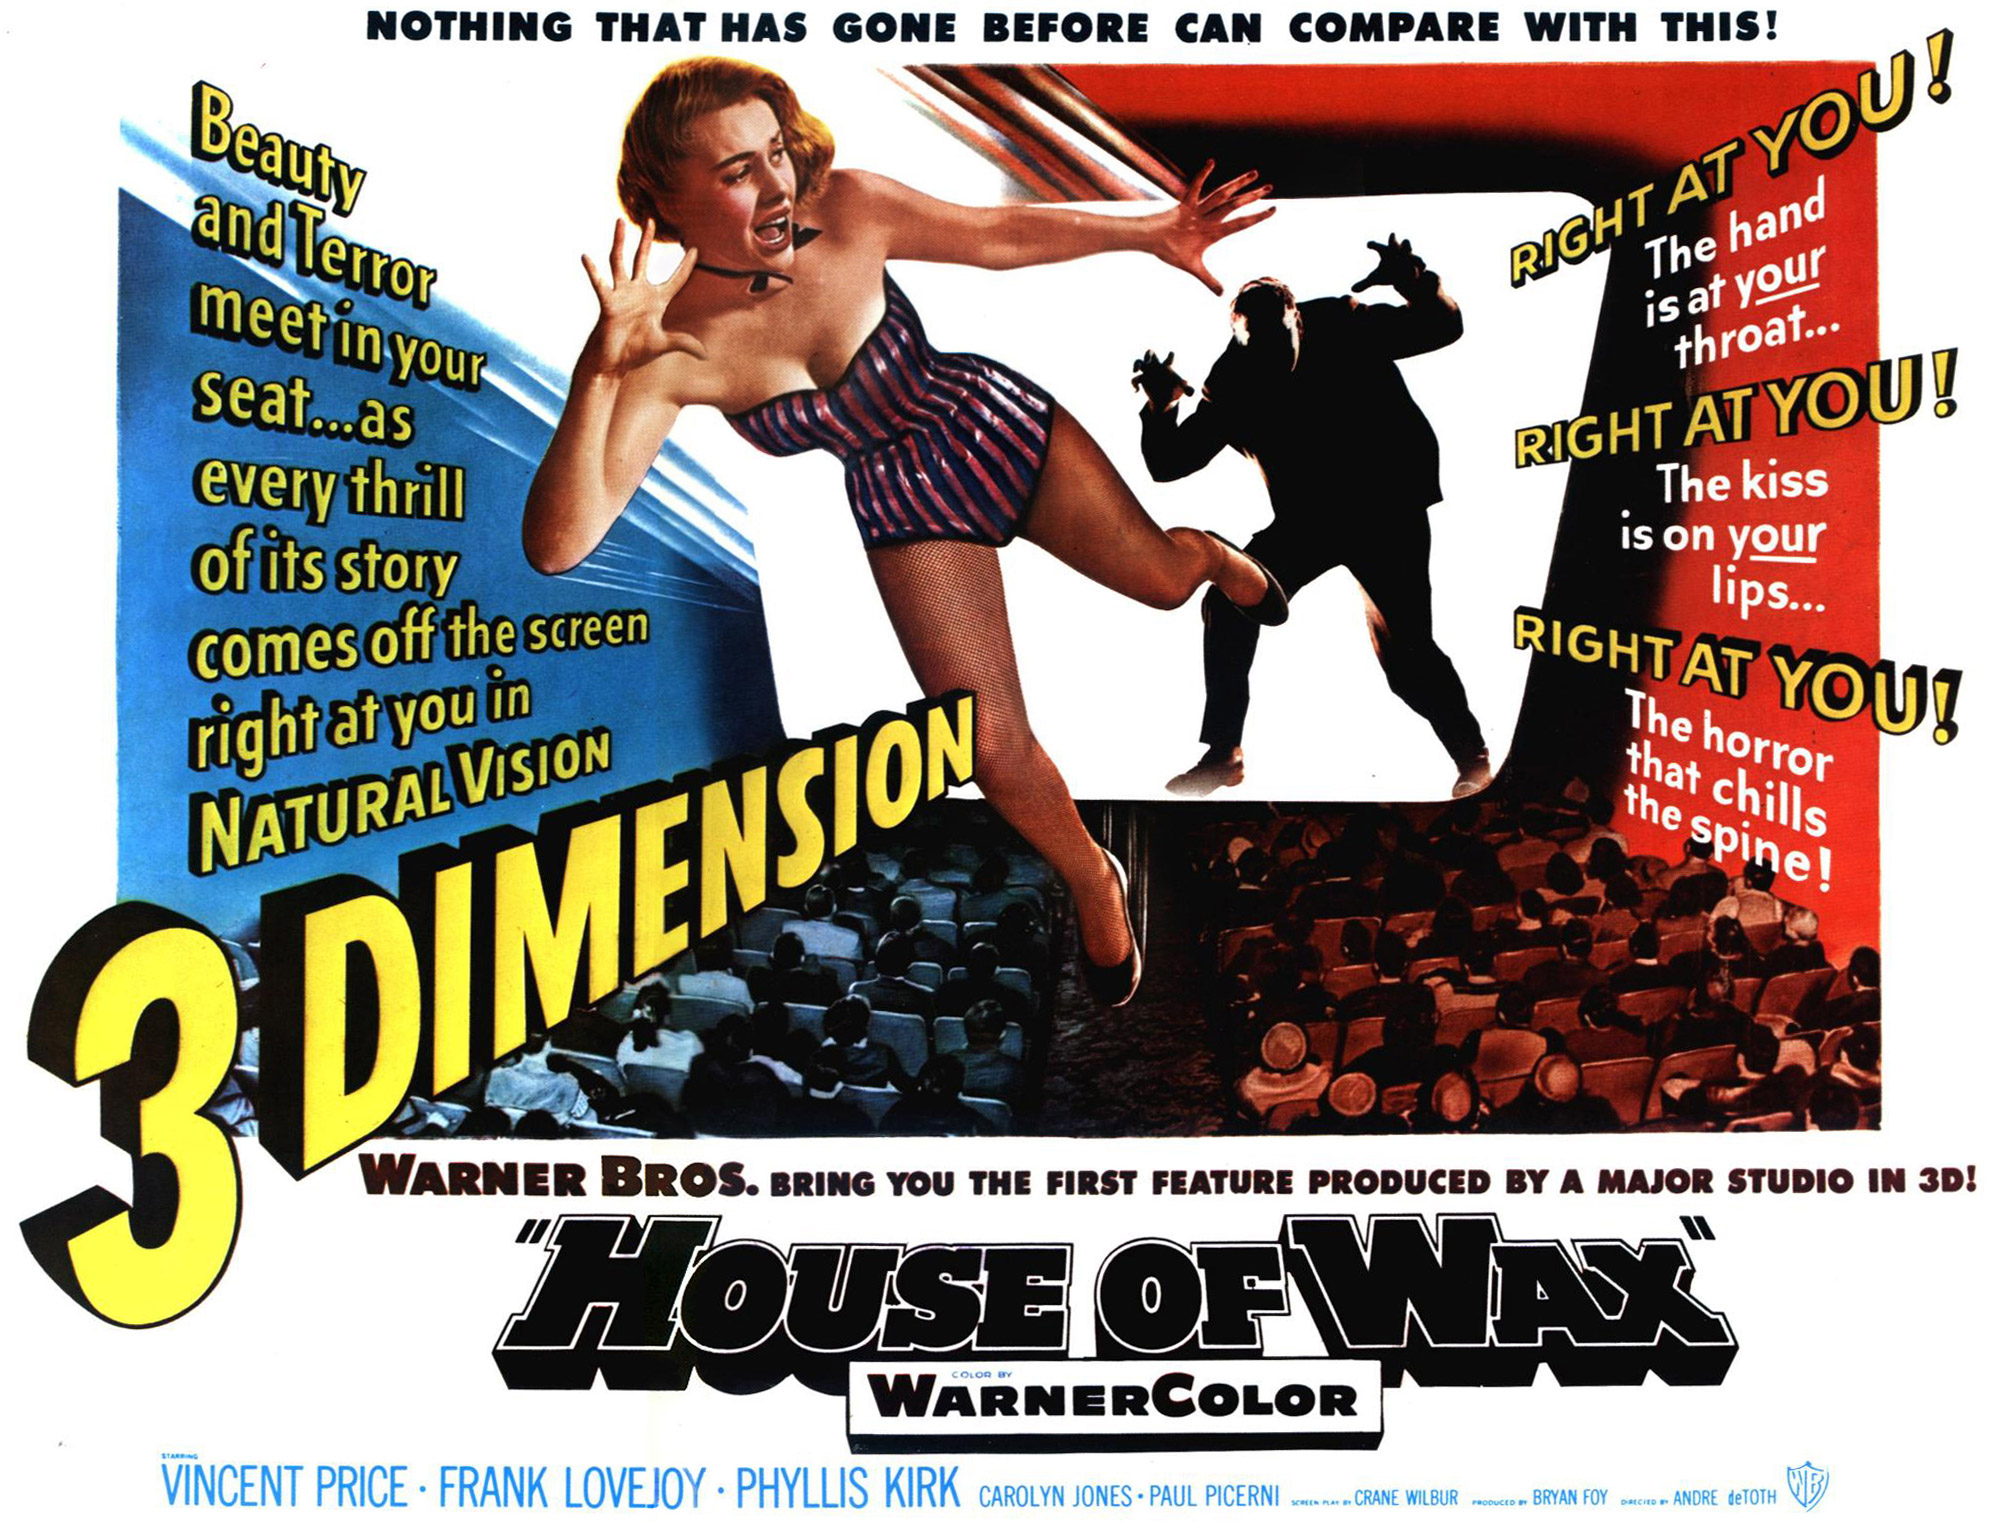 Warning! These 1950s Movie Gimmicks Will Shock You ...